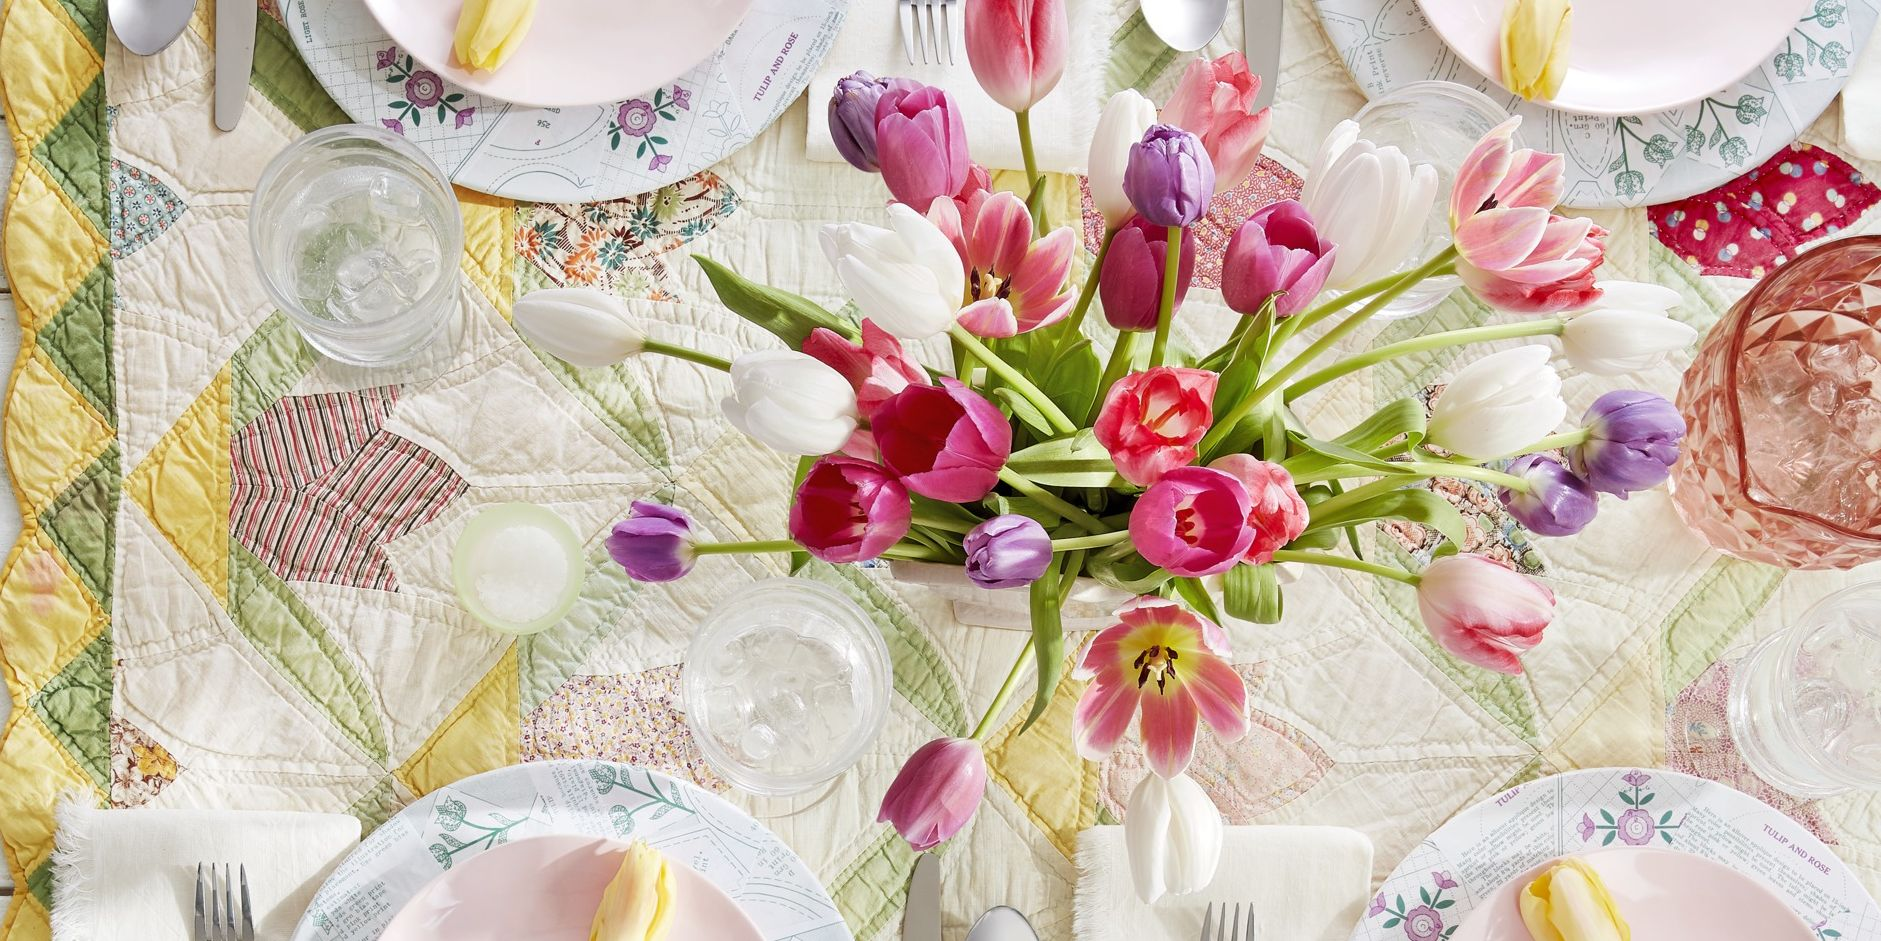 quilt tablecloth spring centerpiece